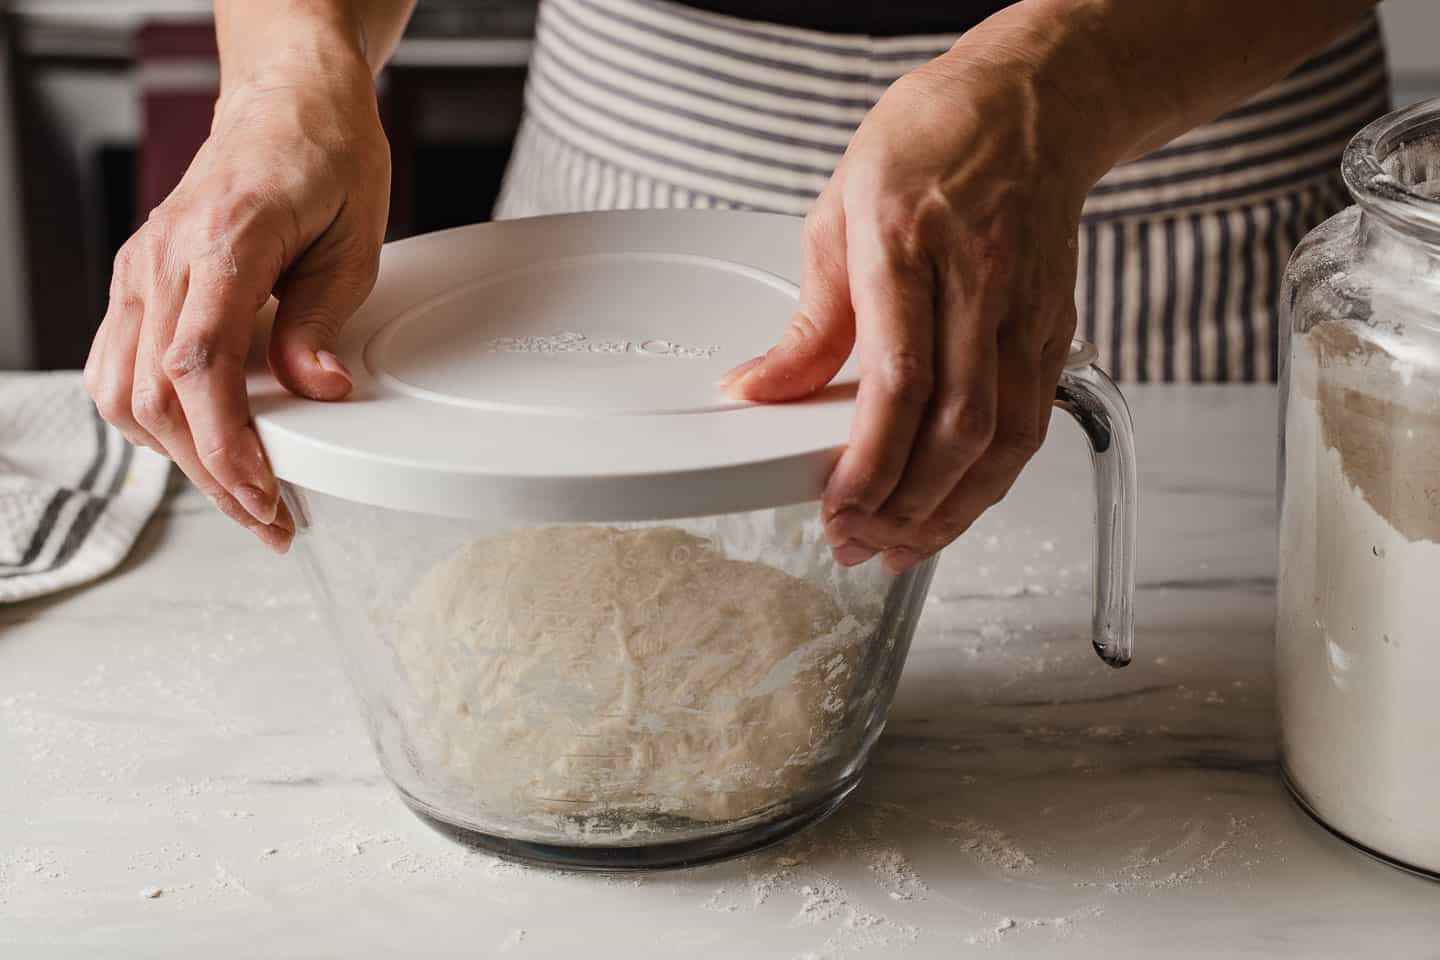 A woman placing a cover on a bowl of dough.